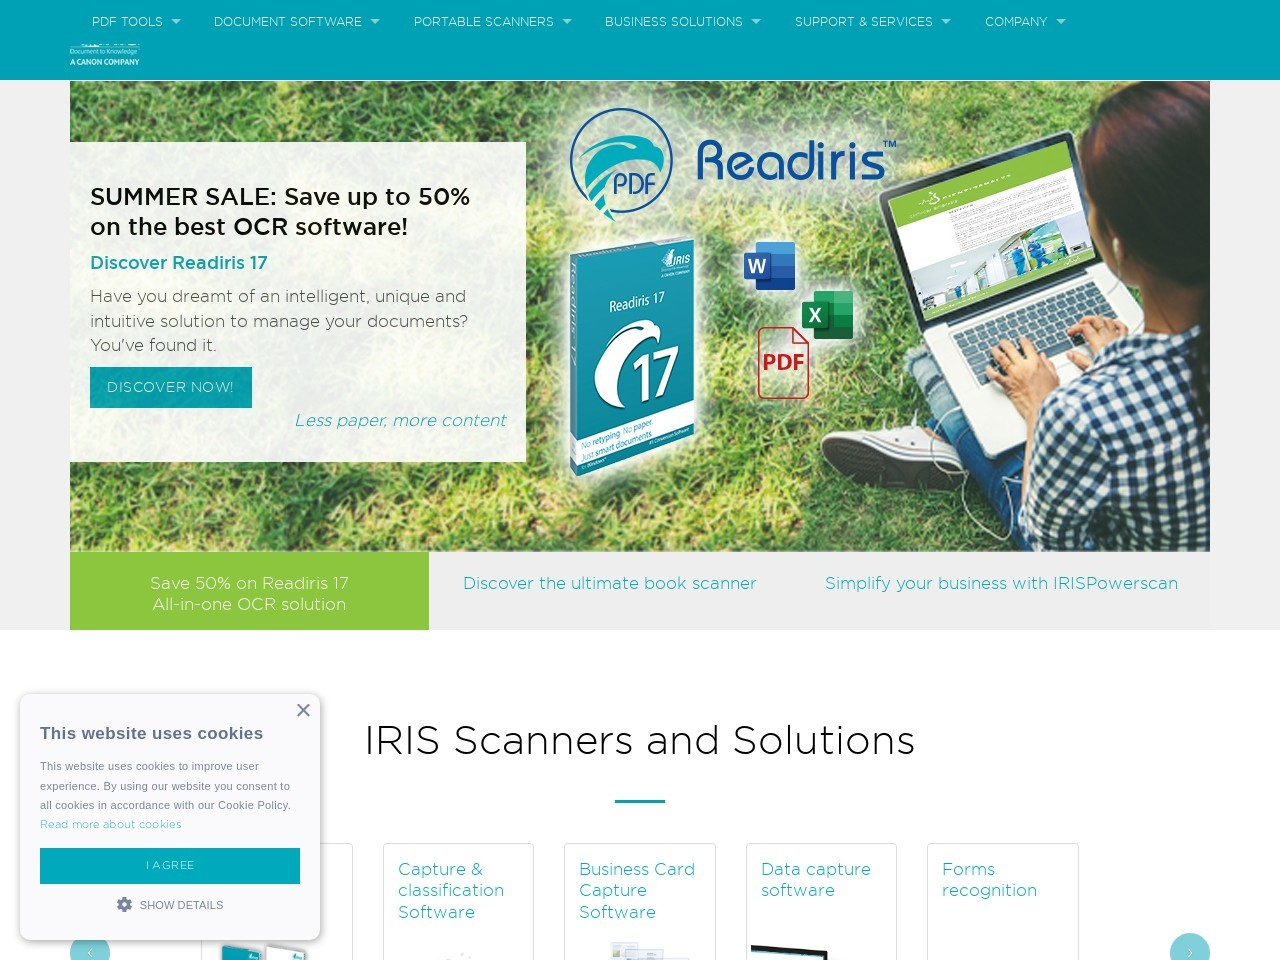 Cardiris Pro 5 for Windows (Business Card Recognition Software)